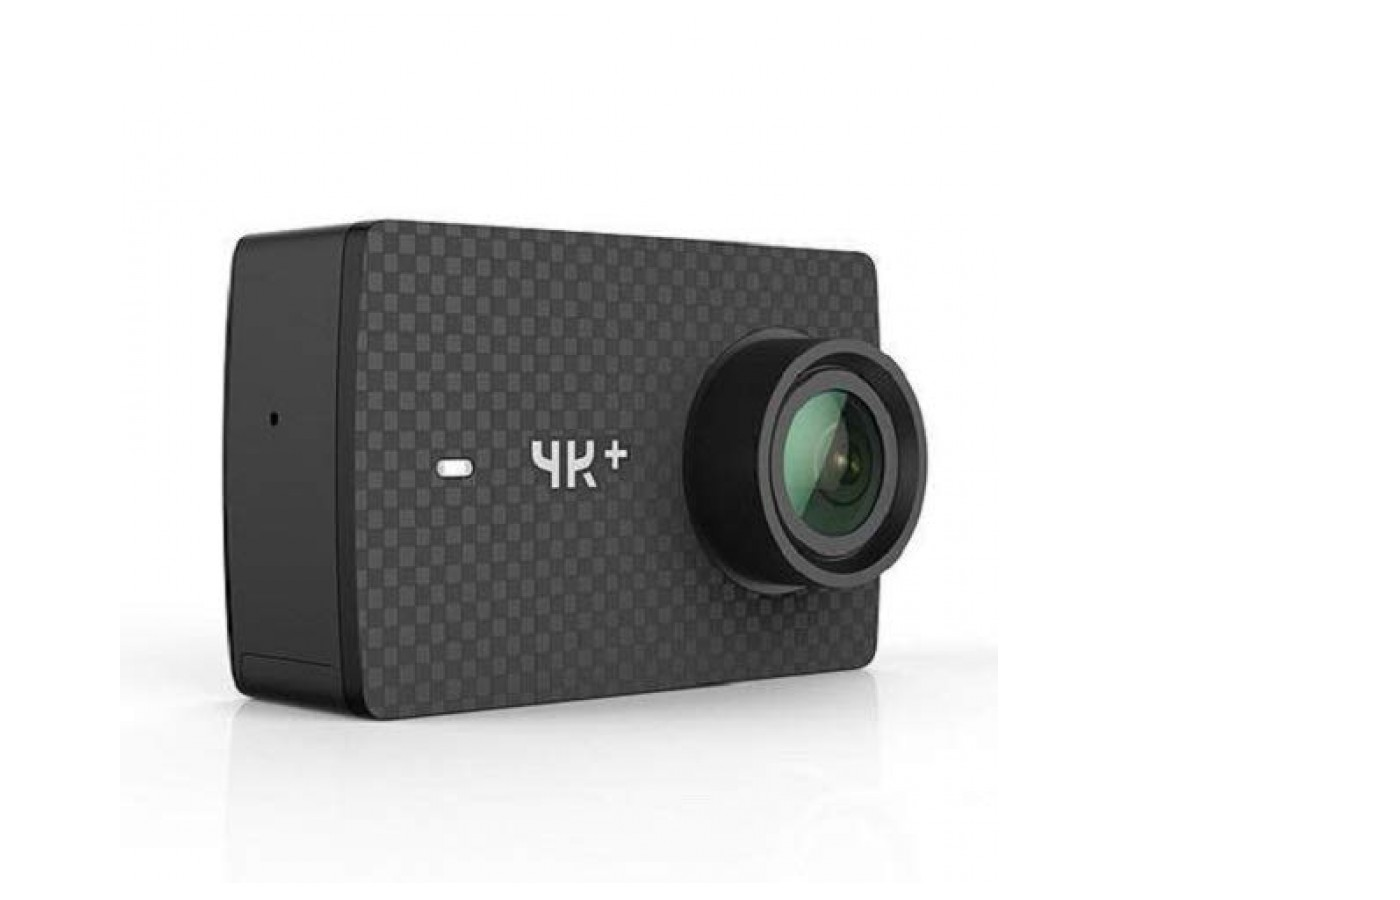 The YI 4K+ includes twice the framerate of its competitors.